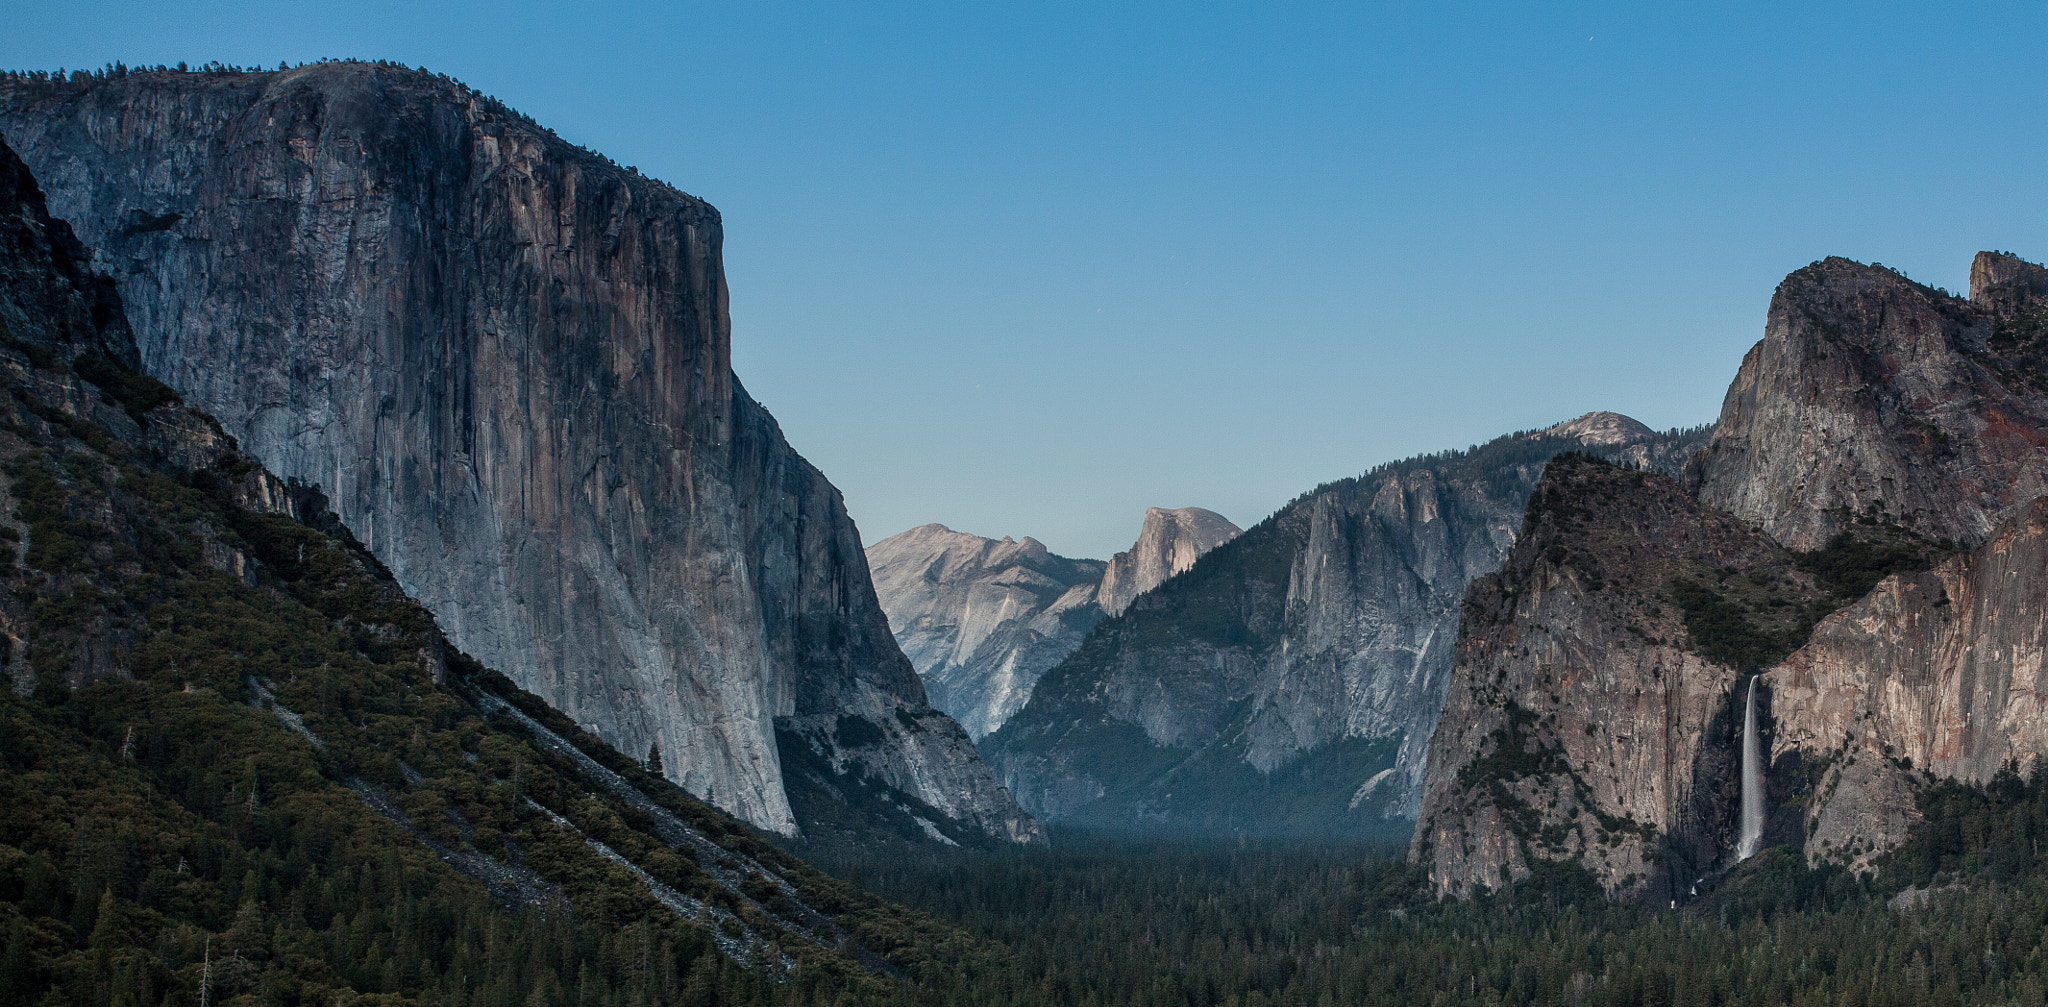 Photograph Yosemite Valley at Night by Matt Leitholt on 500px